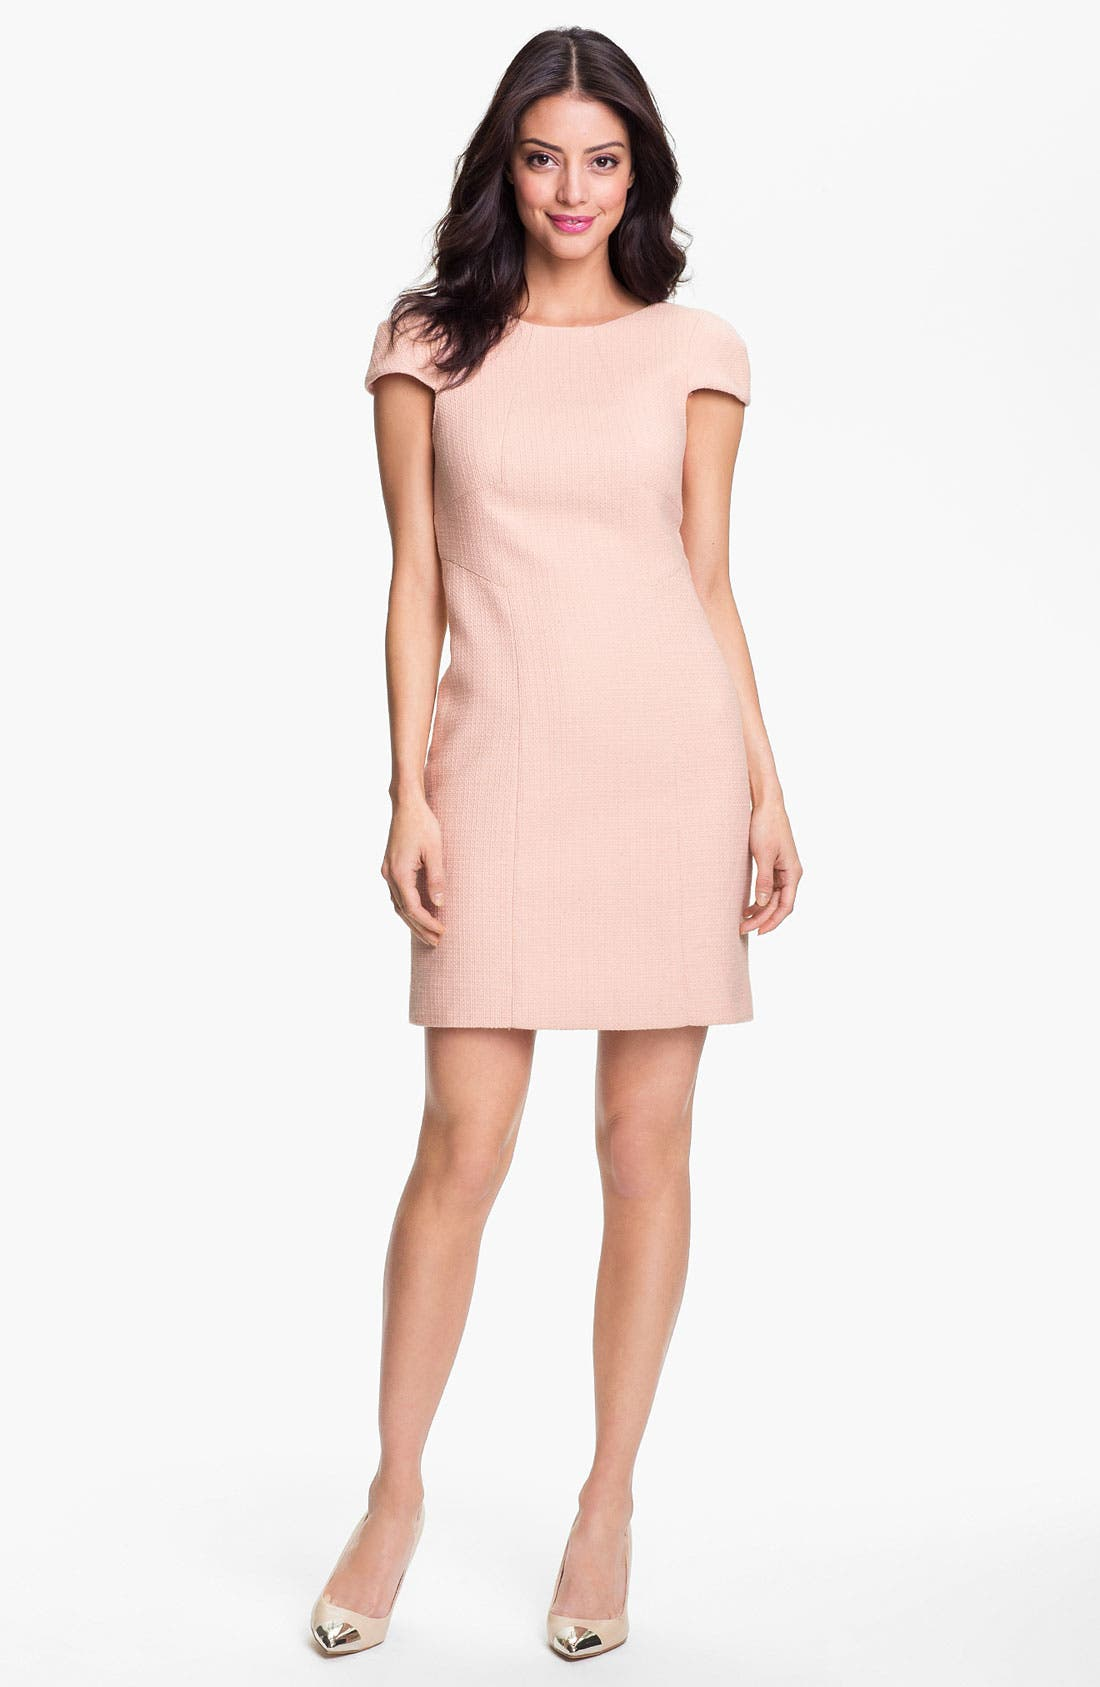 Alternate Image 1 Selected - 4.collective Basket Weave Cotton Sheath Dress